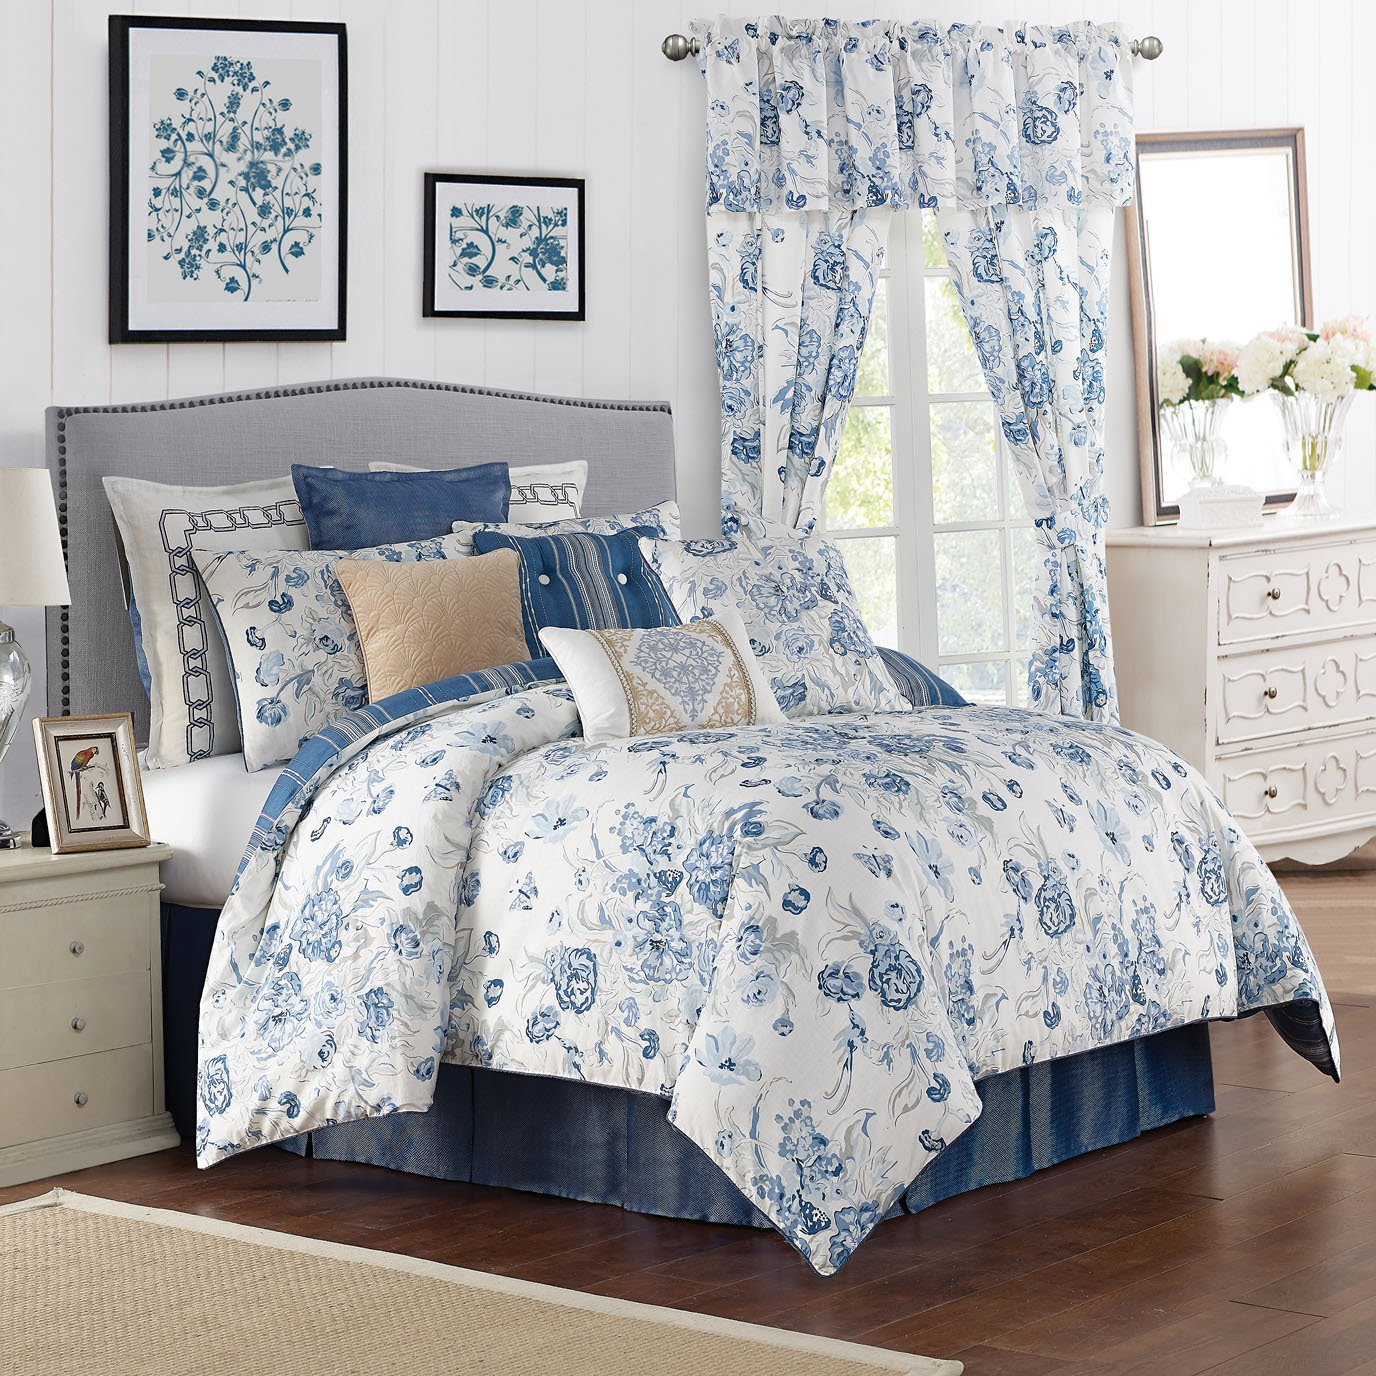 Ardenelle 4 Piece King Comforter Set